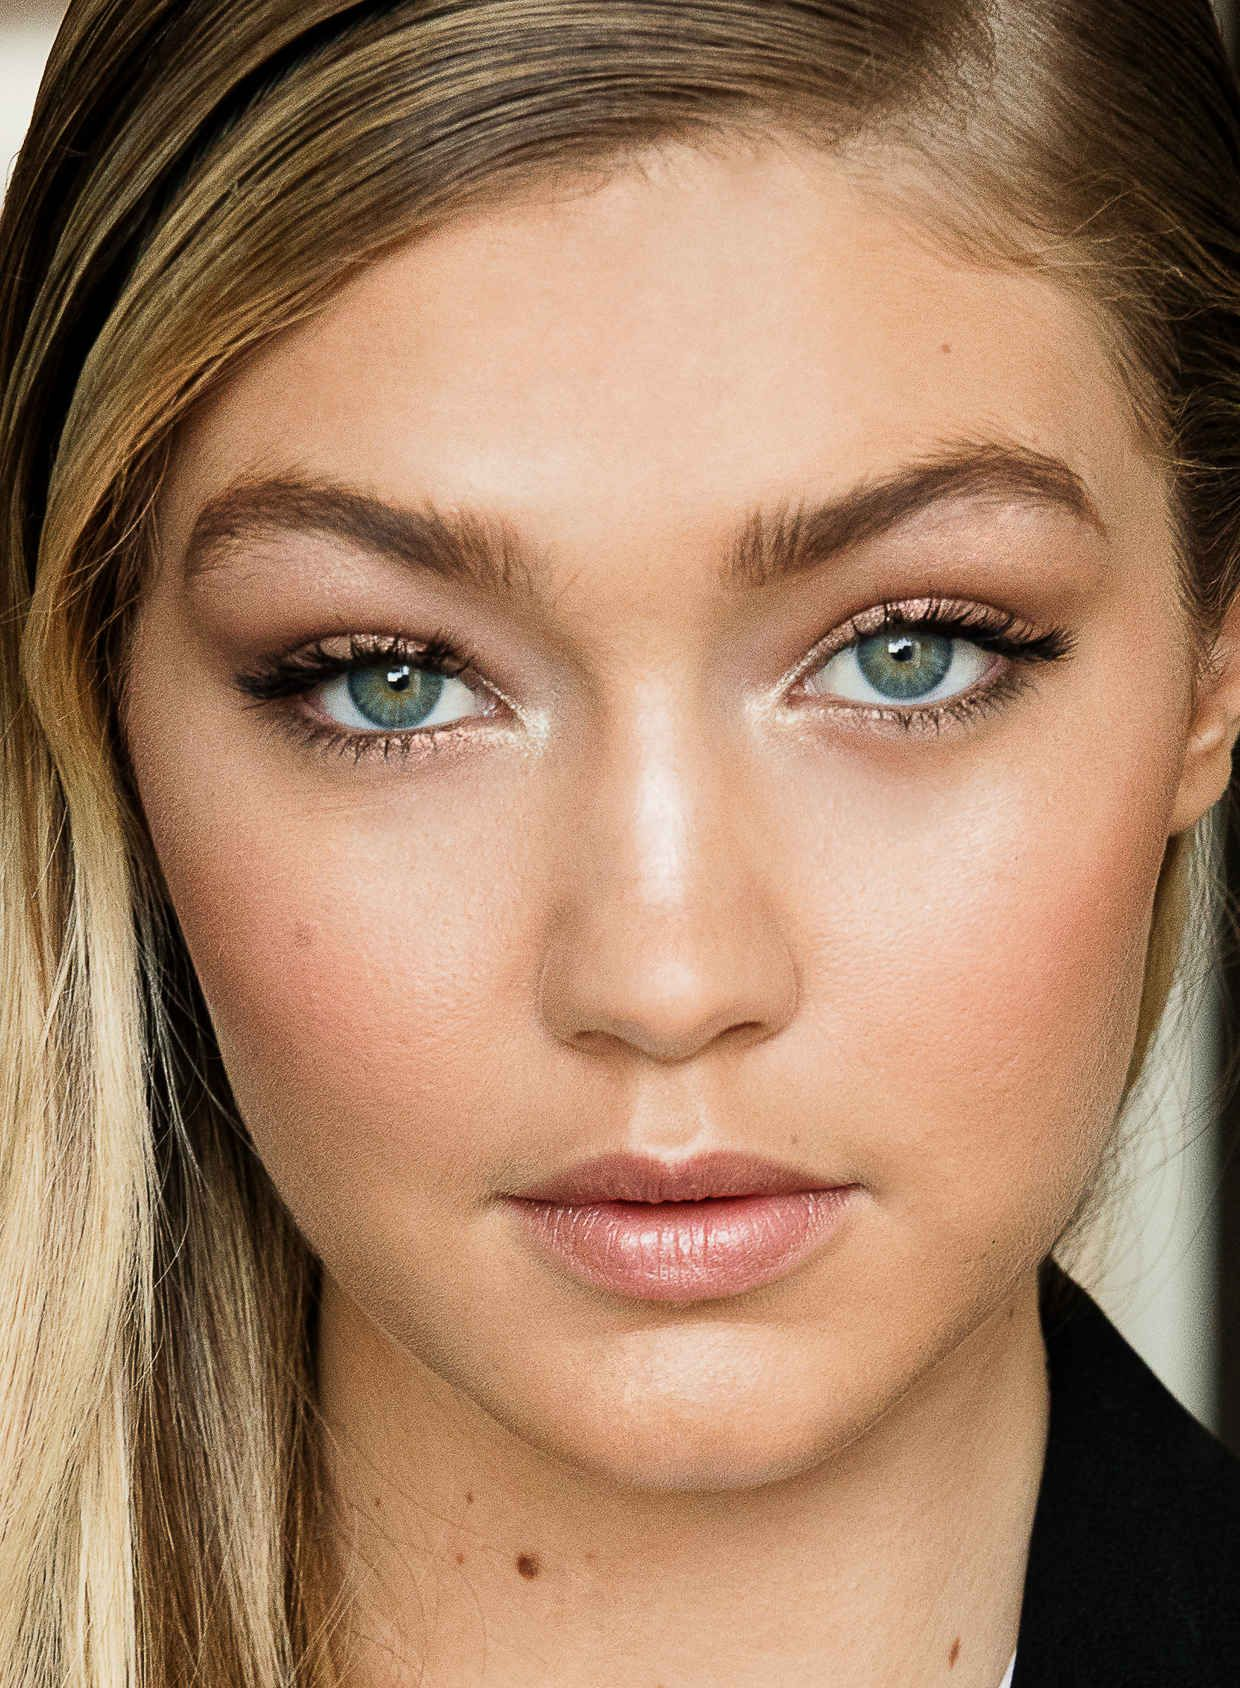 GIGI HADID THIS IS THE OPPOSITE OF AGING MAKEUP Gigi